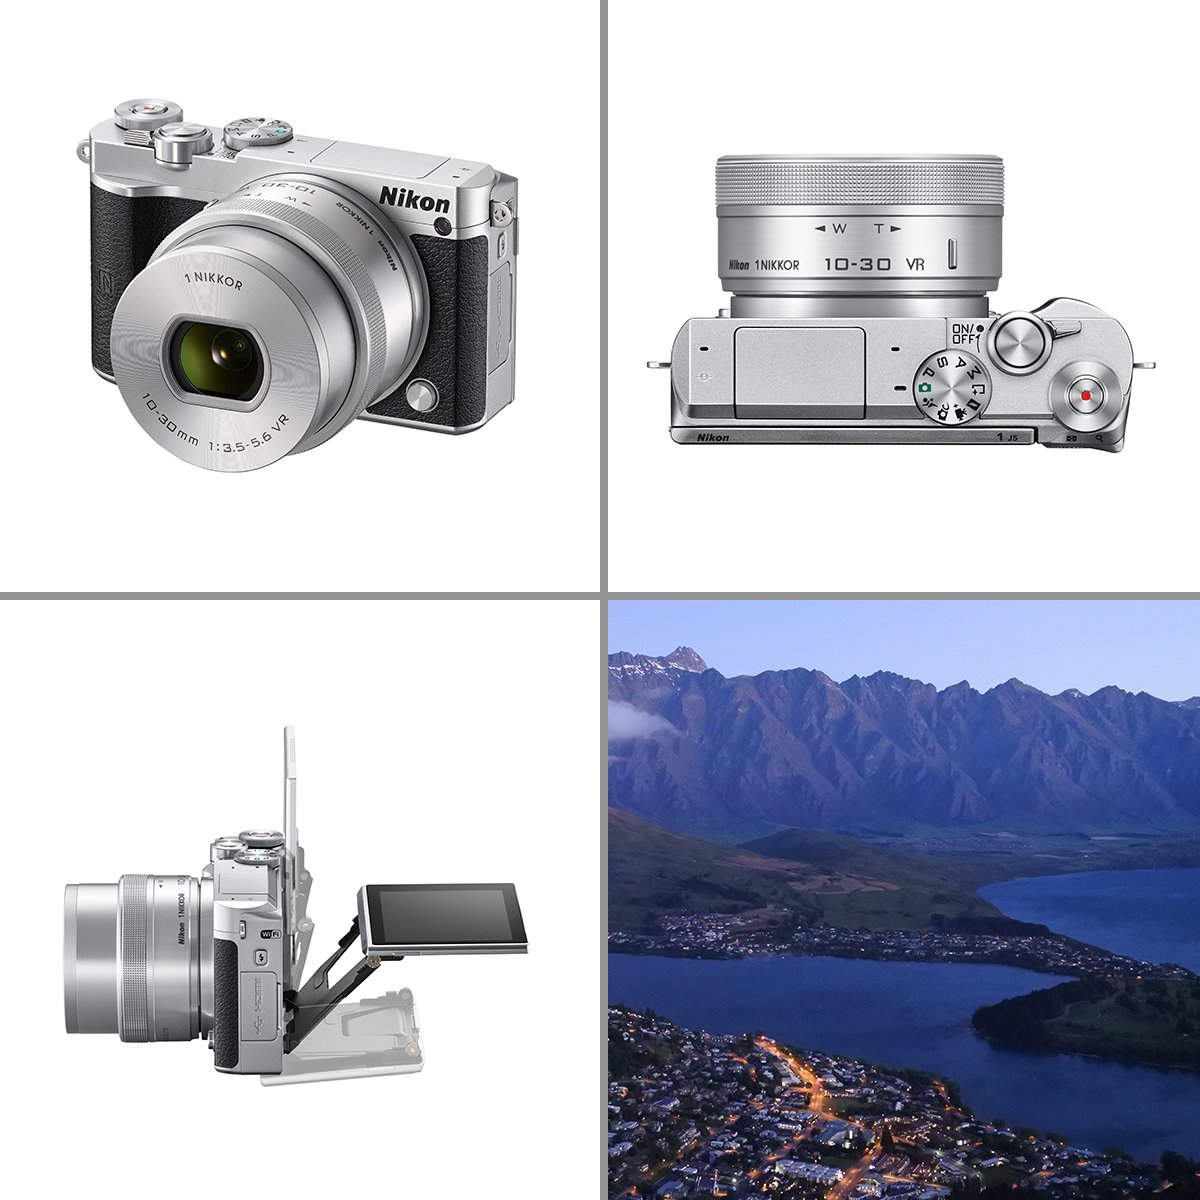 Win a Nikon camera with Dixons Travel! Not long to go till we draw the winner. Enter here: